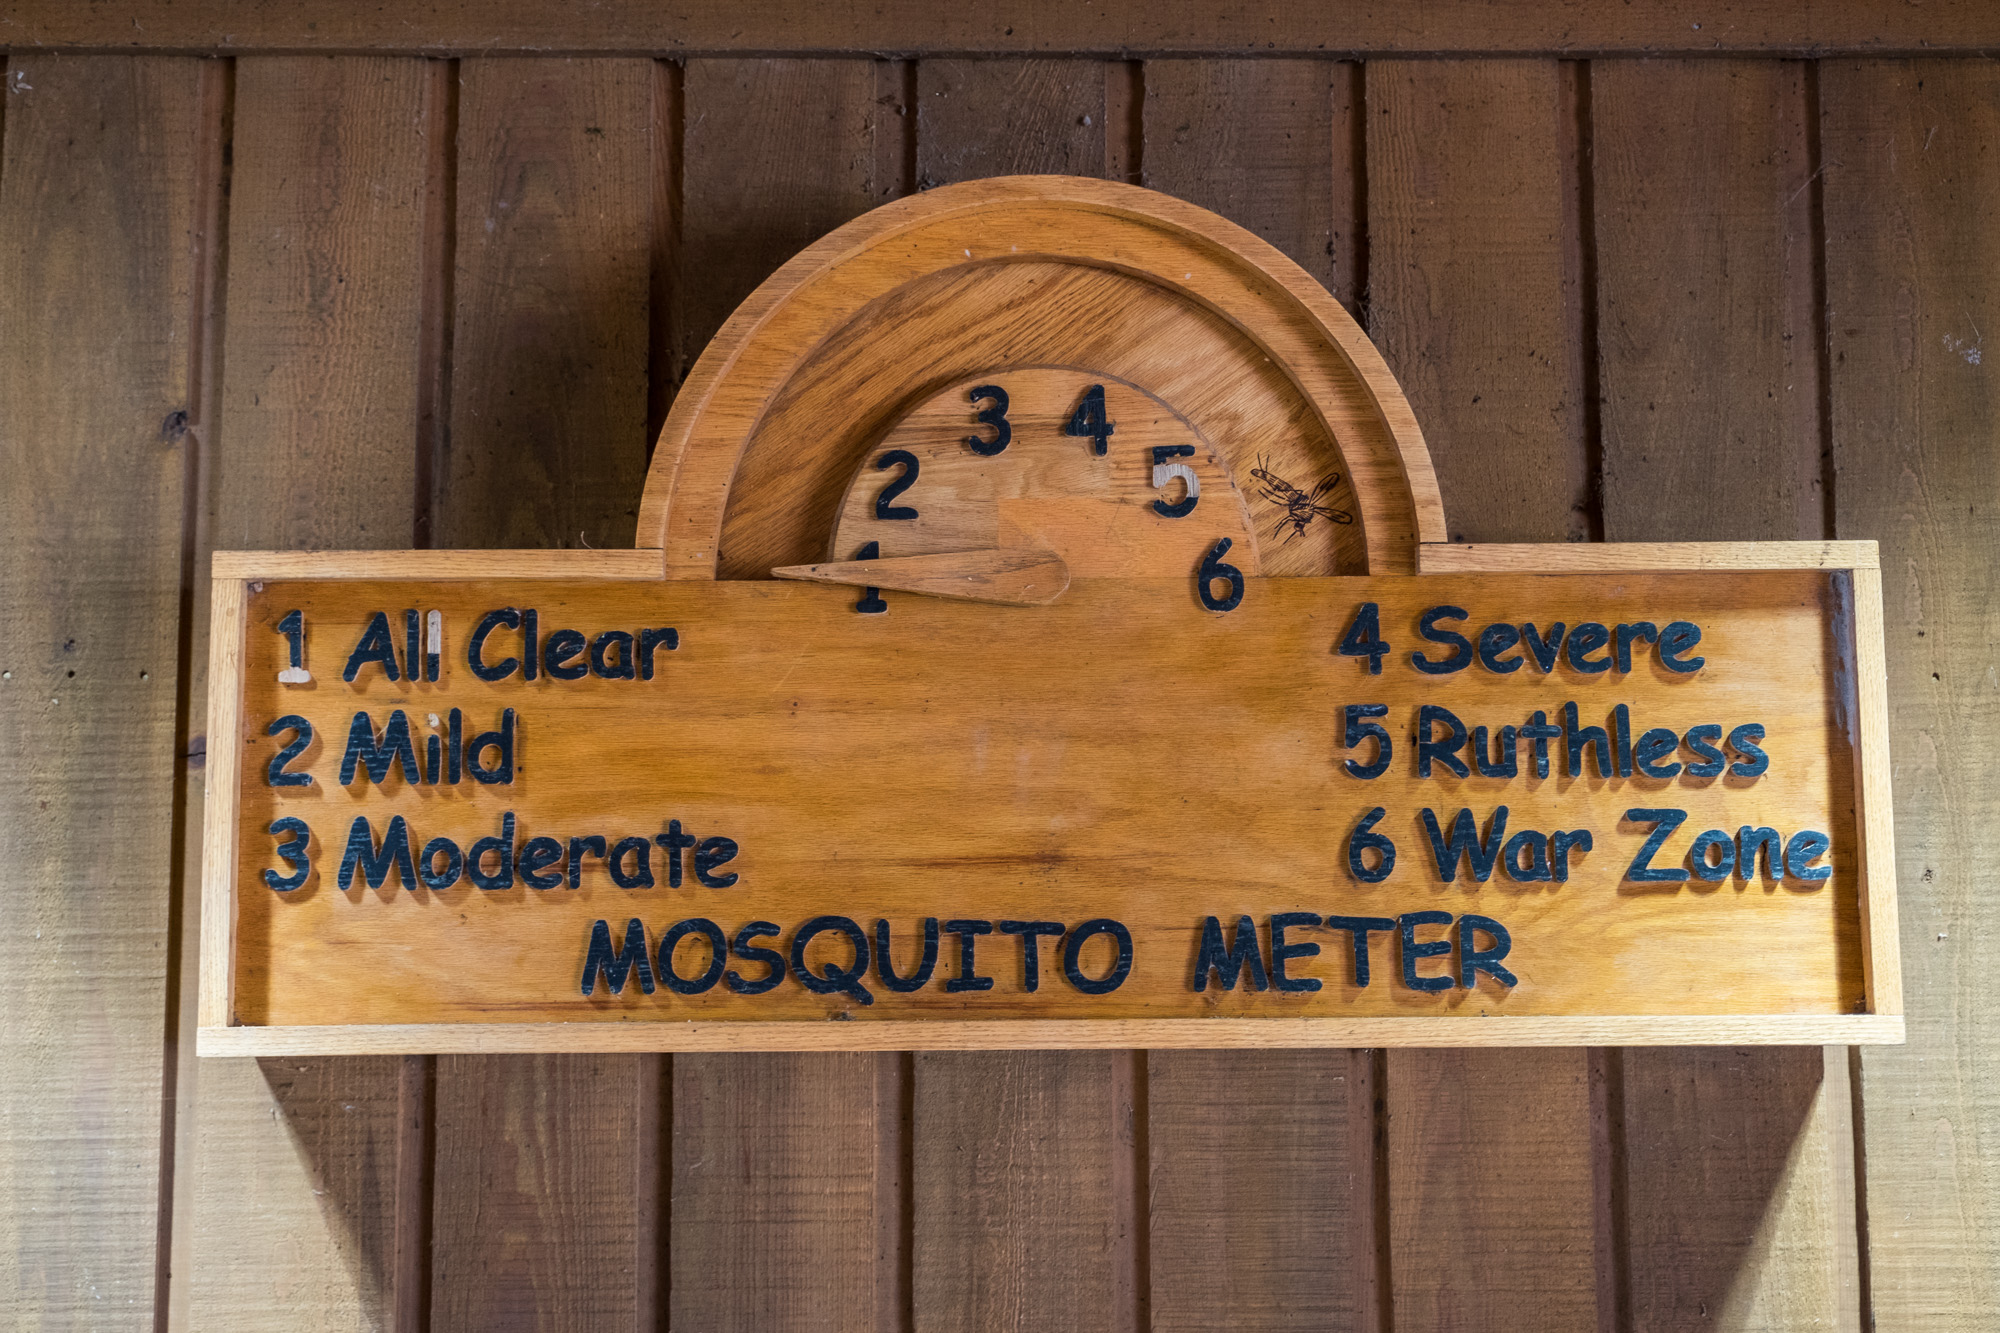 """In the summer the bugs can be bad. We were so thankful it was NOT on a """"war zone"""" rating."""